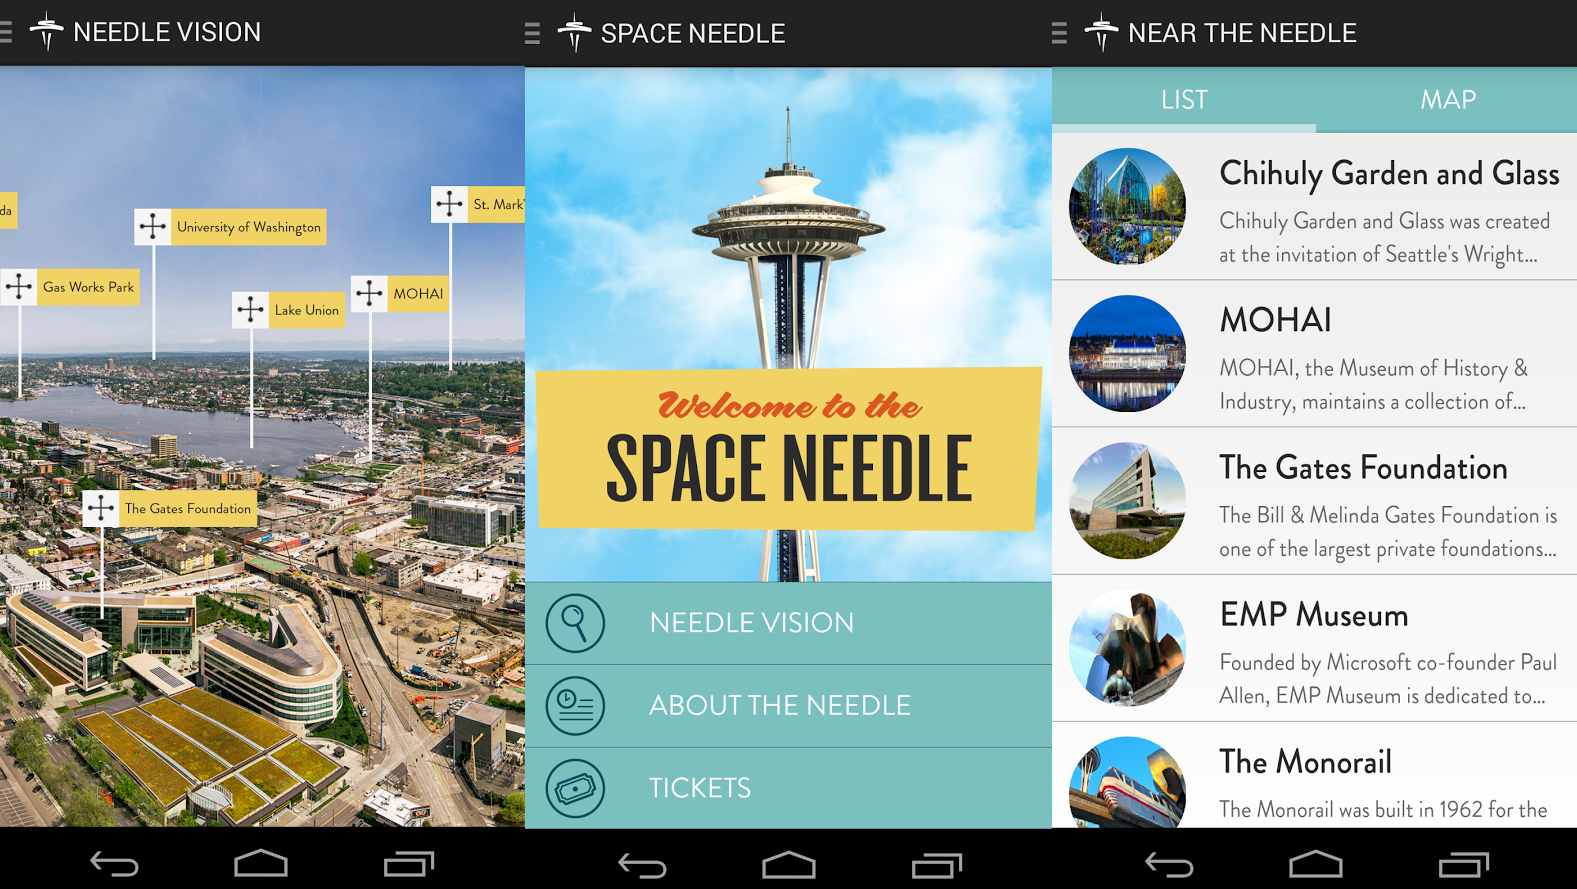 Seattle's Space Needle Updates Attractions with AR